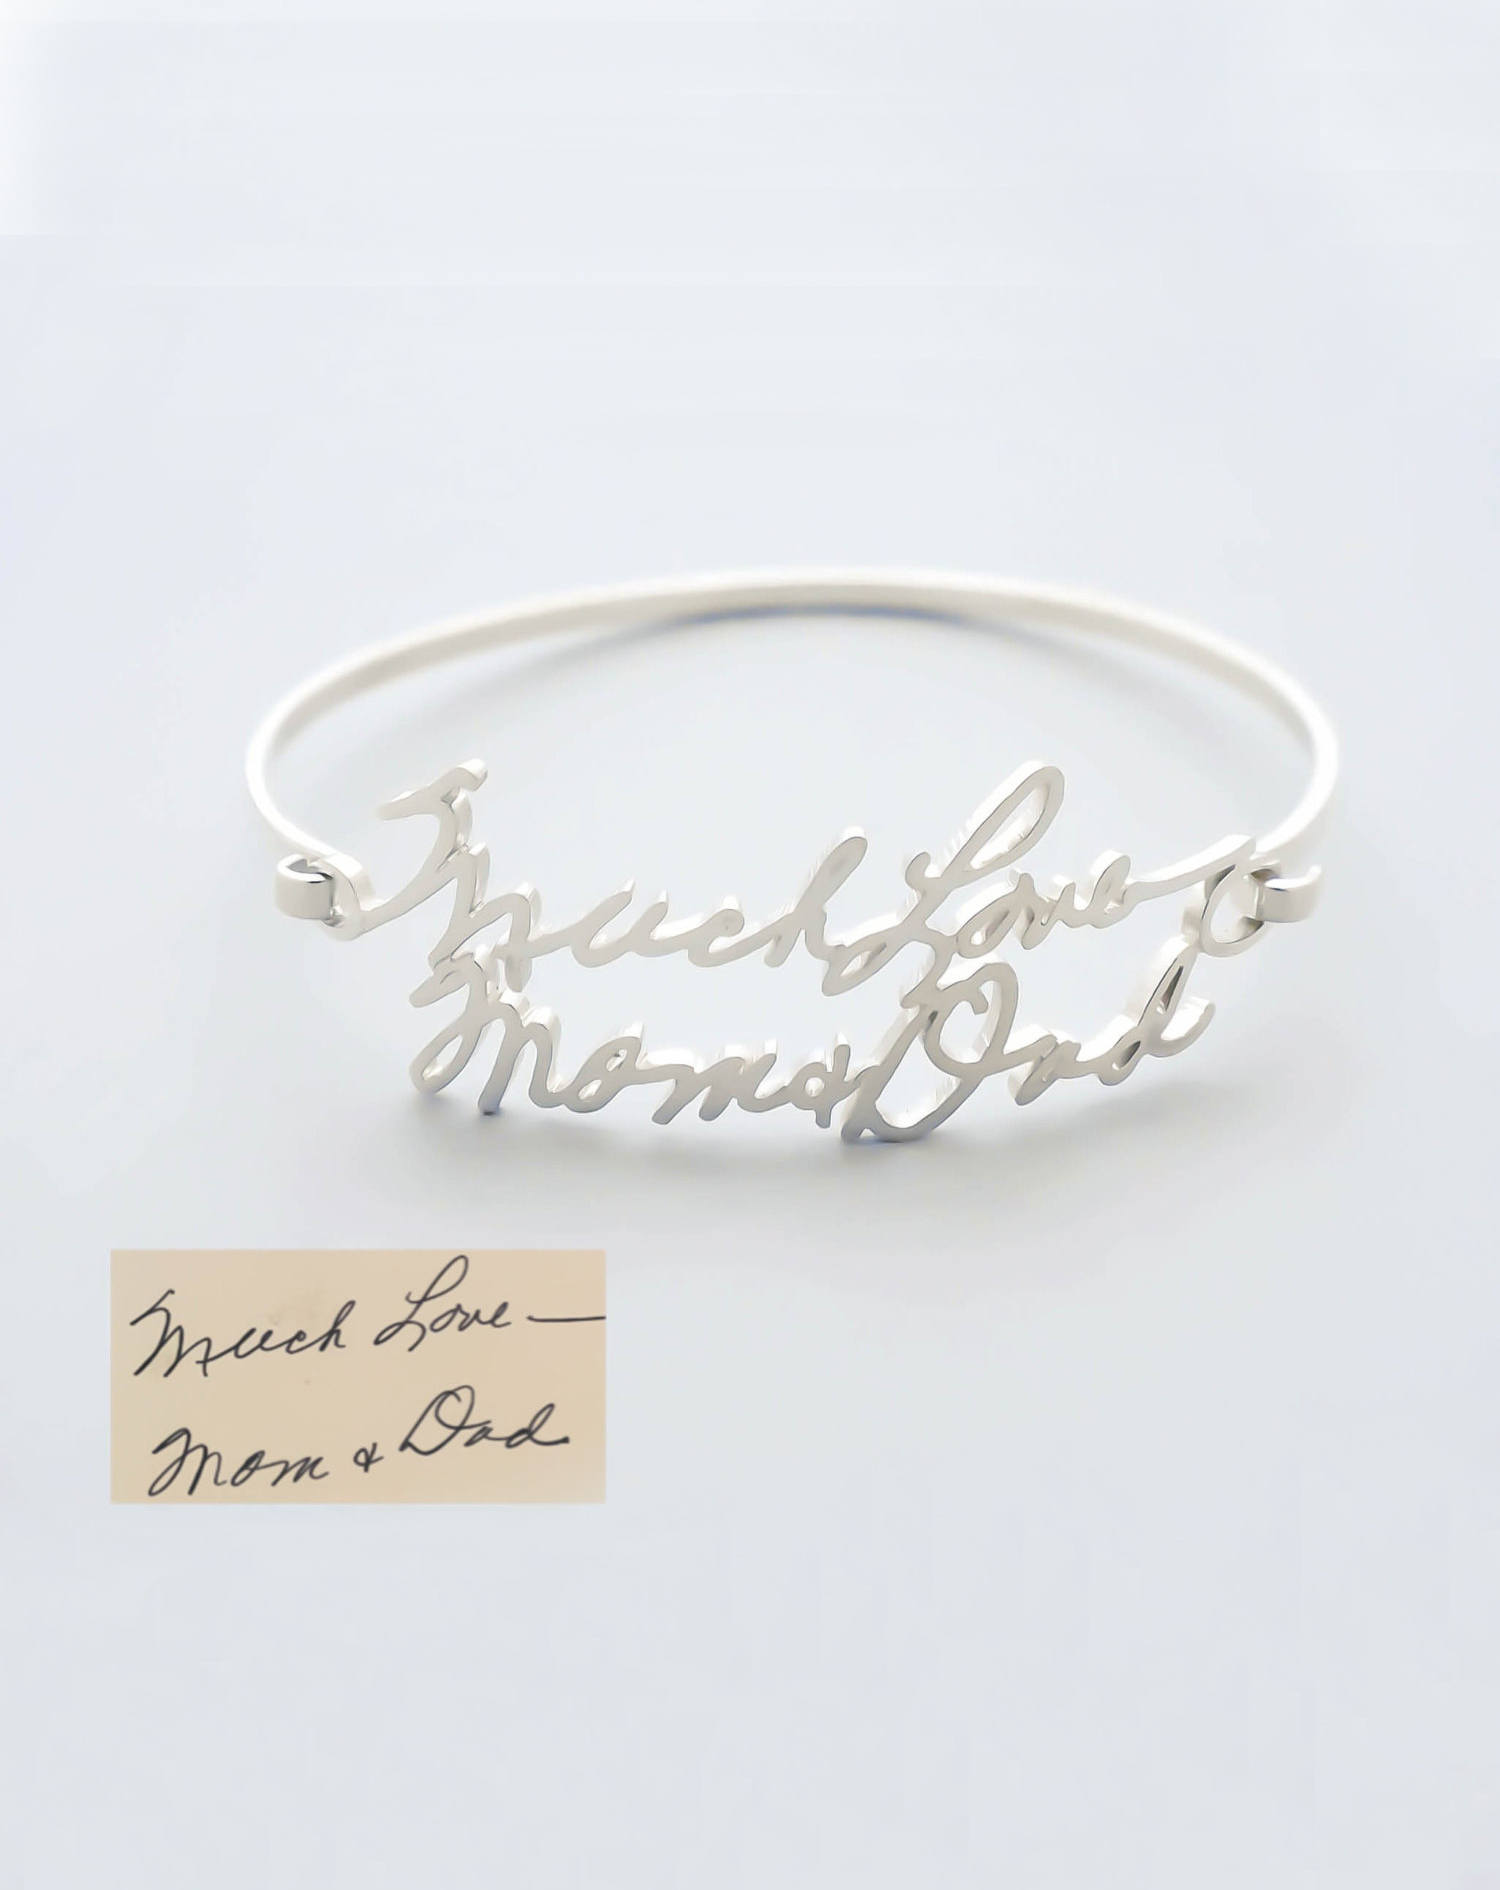 Custom Handwriting Bangle Bracelet is such a beautiful gift